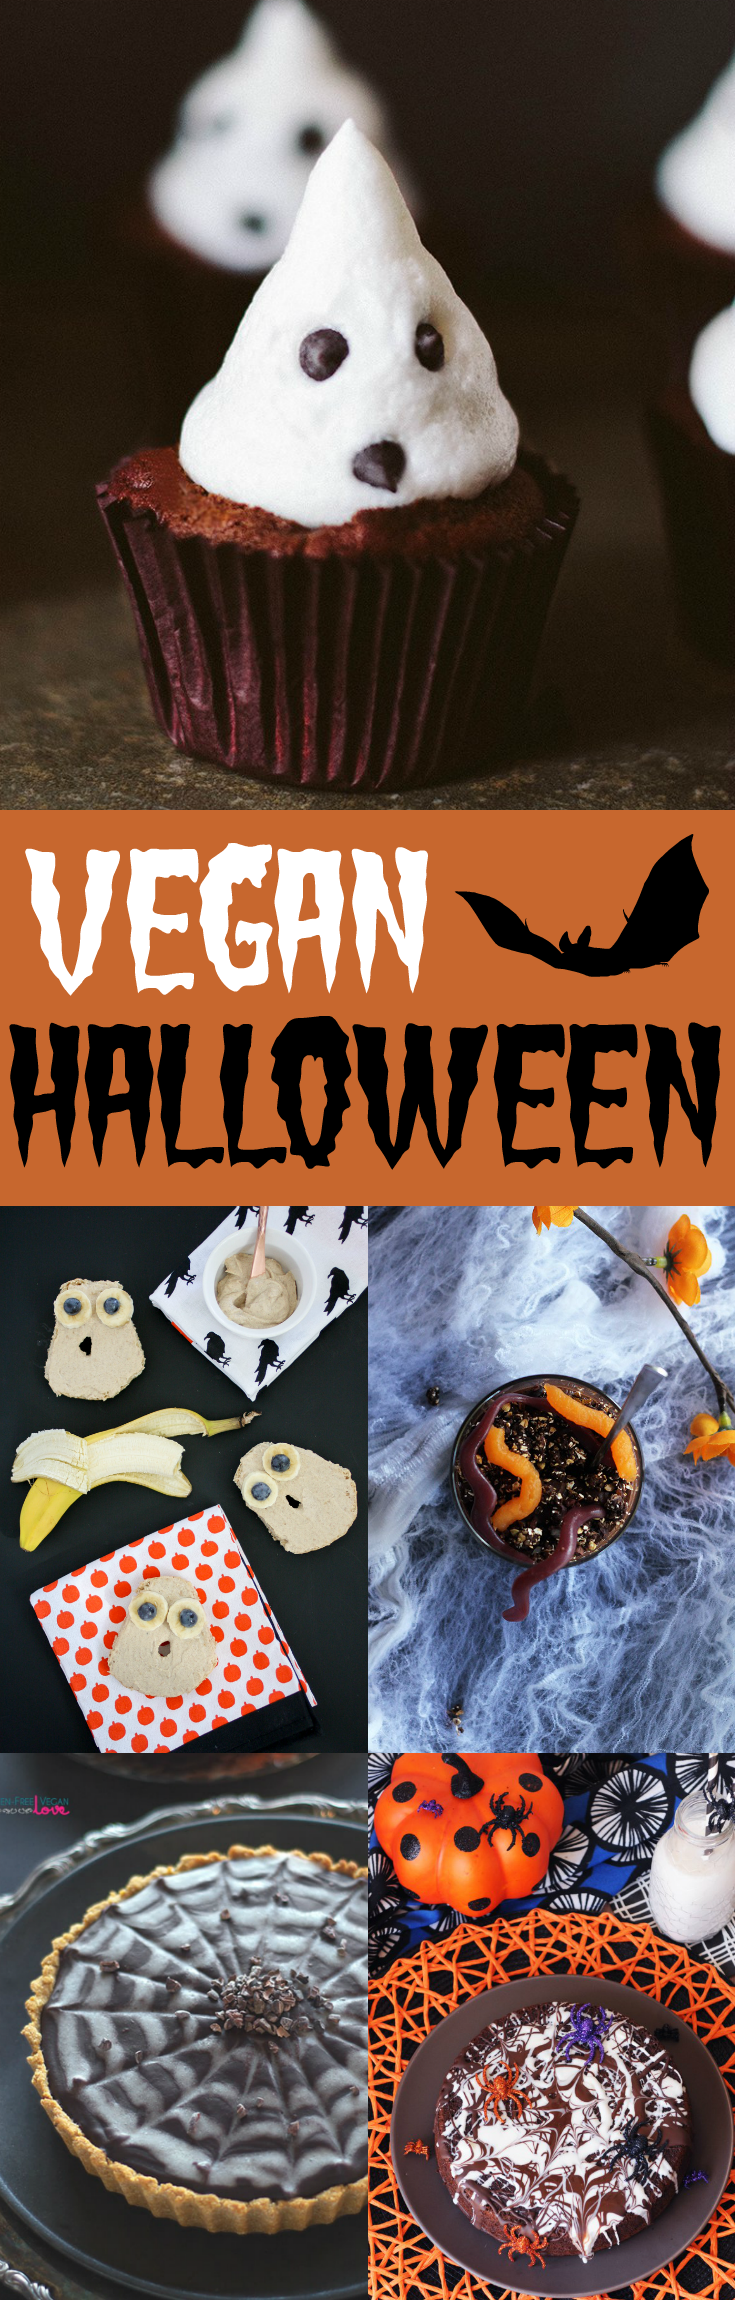 13 Spooky Vegan Halloween Recipes | Halloween recipe, Sweet and ...